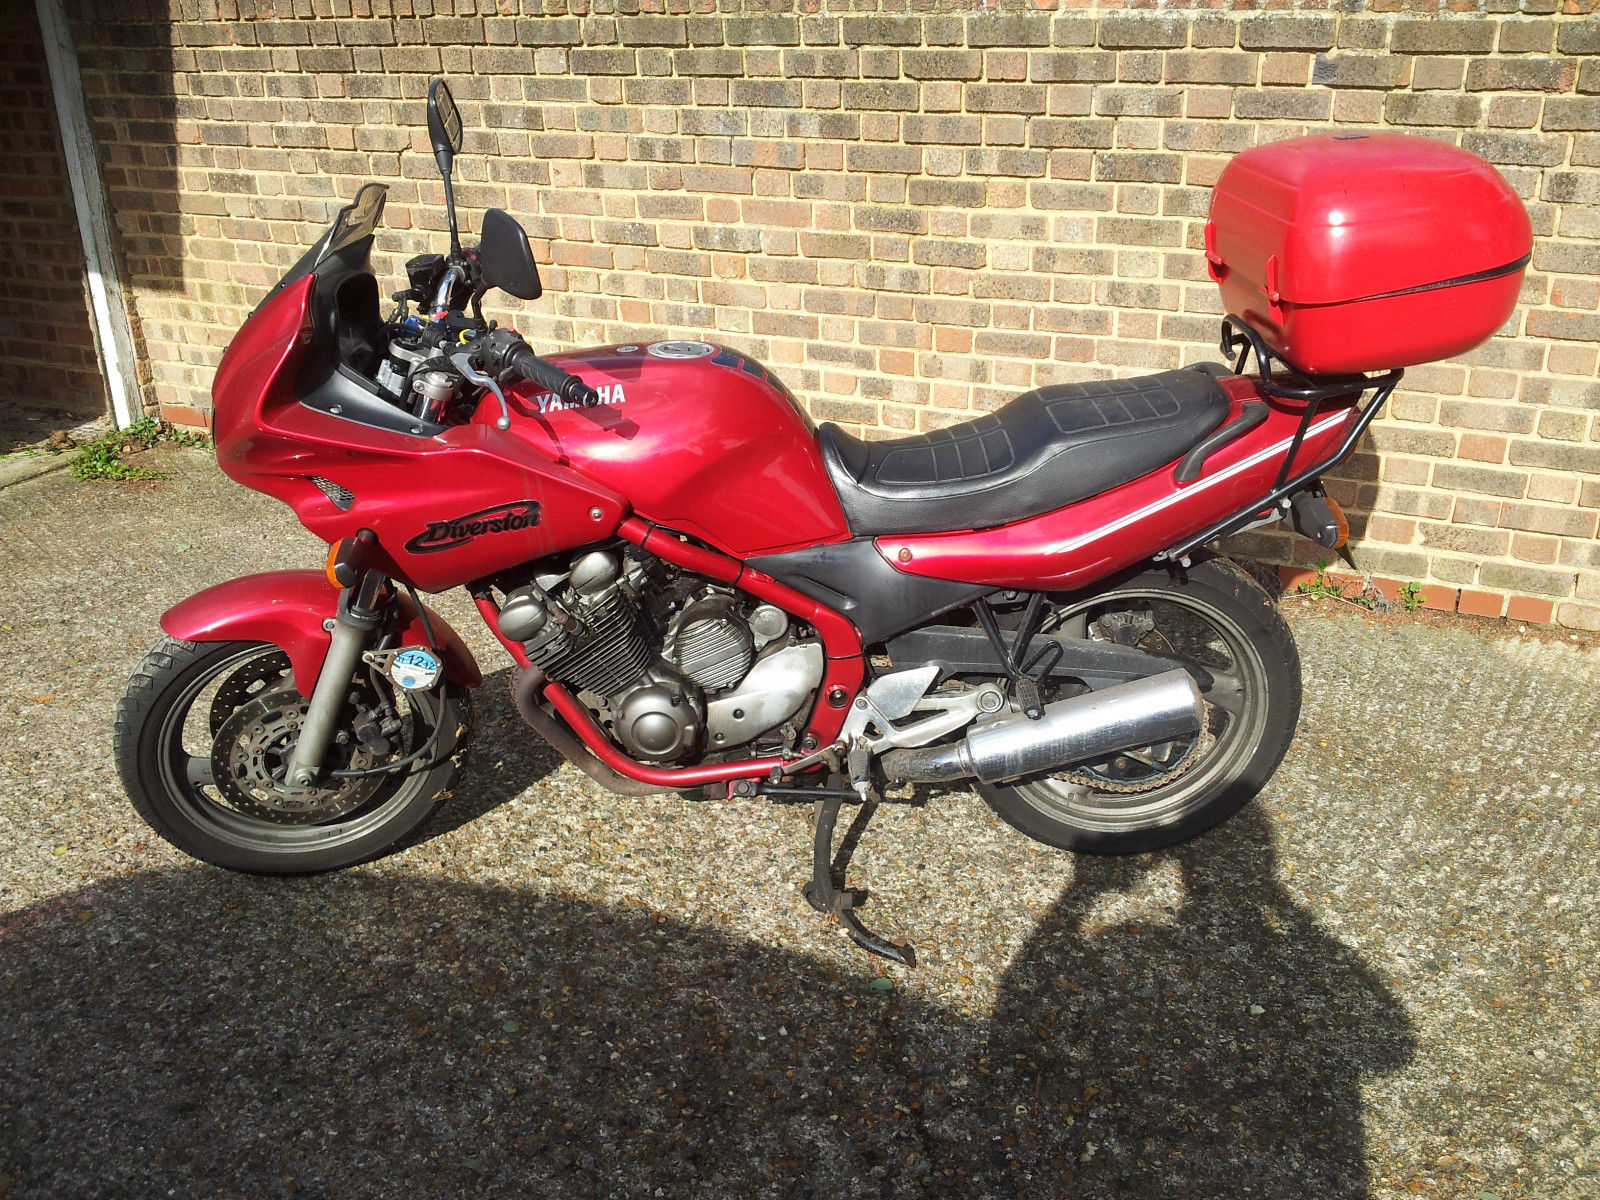 yamaha xj600s diversion 2001 spares or repair n r. Black Bedroom Furniture Sets. Home Design Ideas